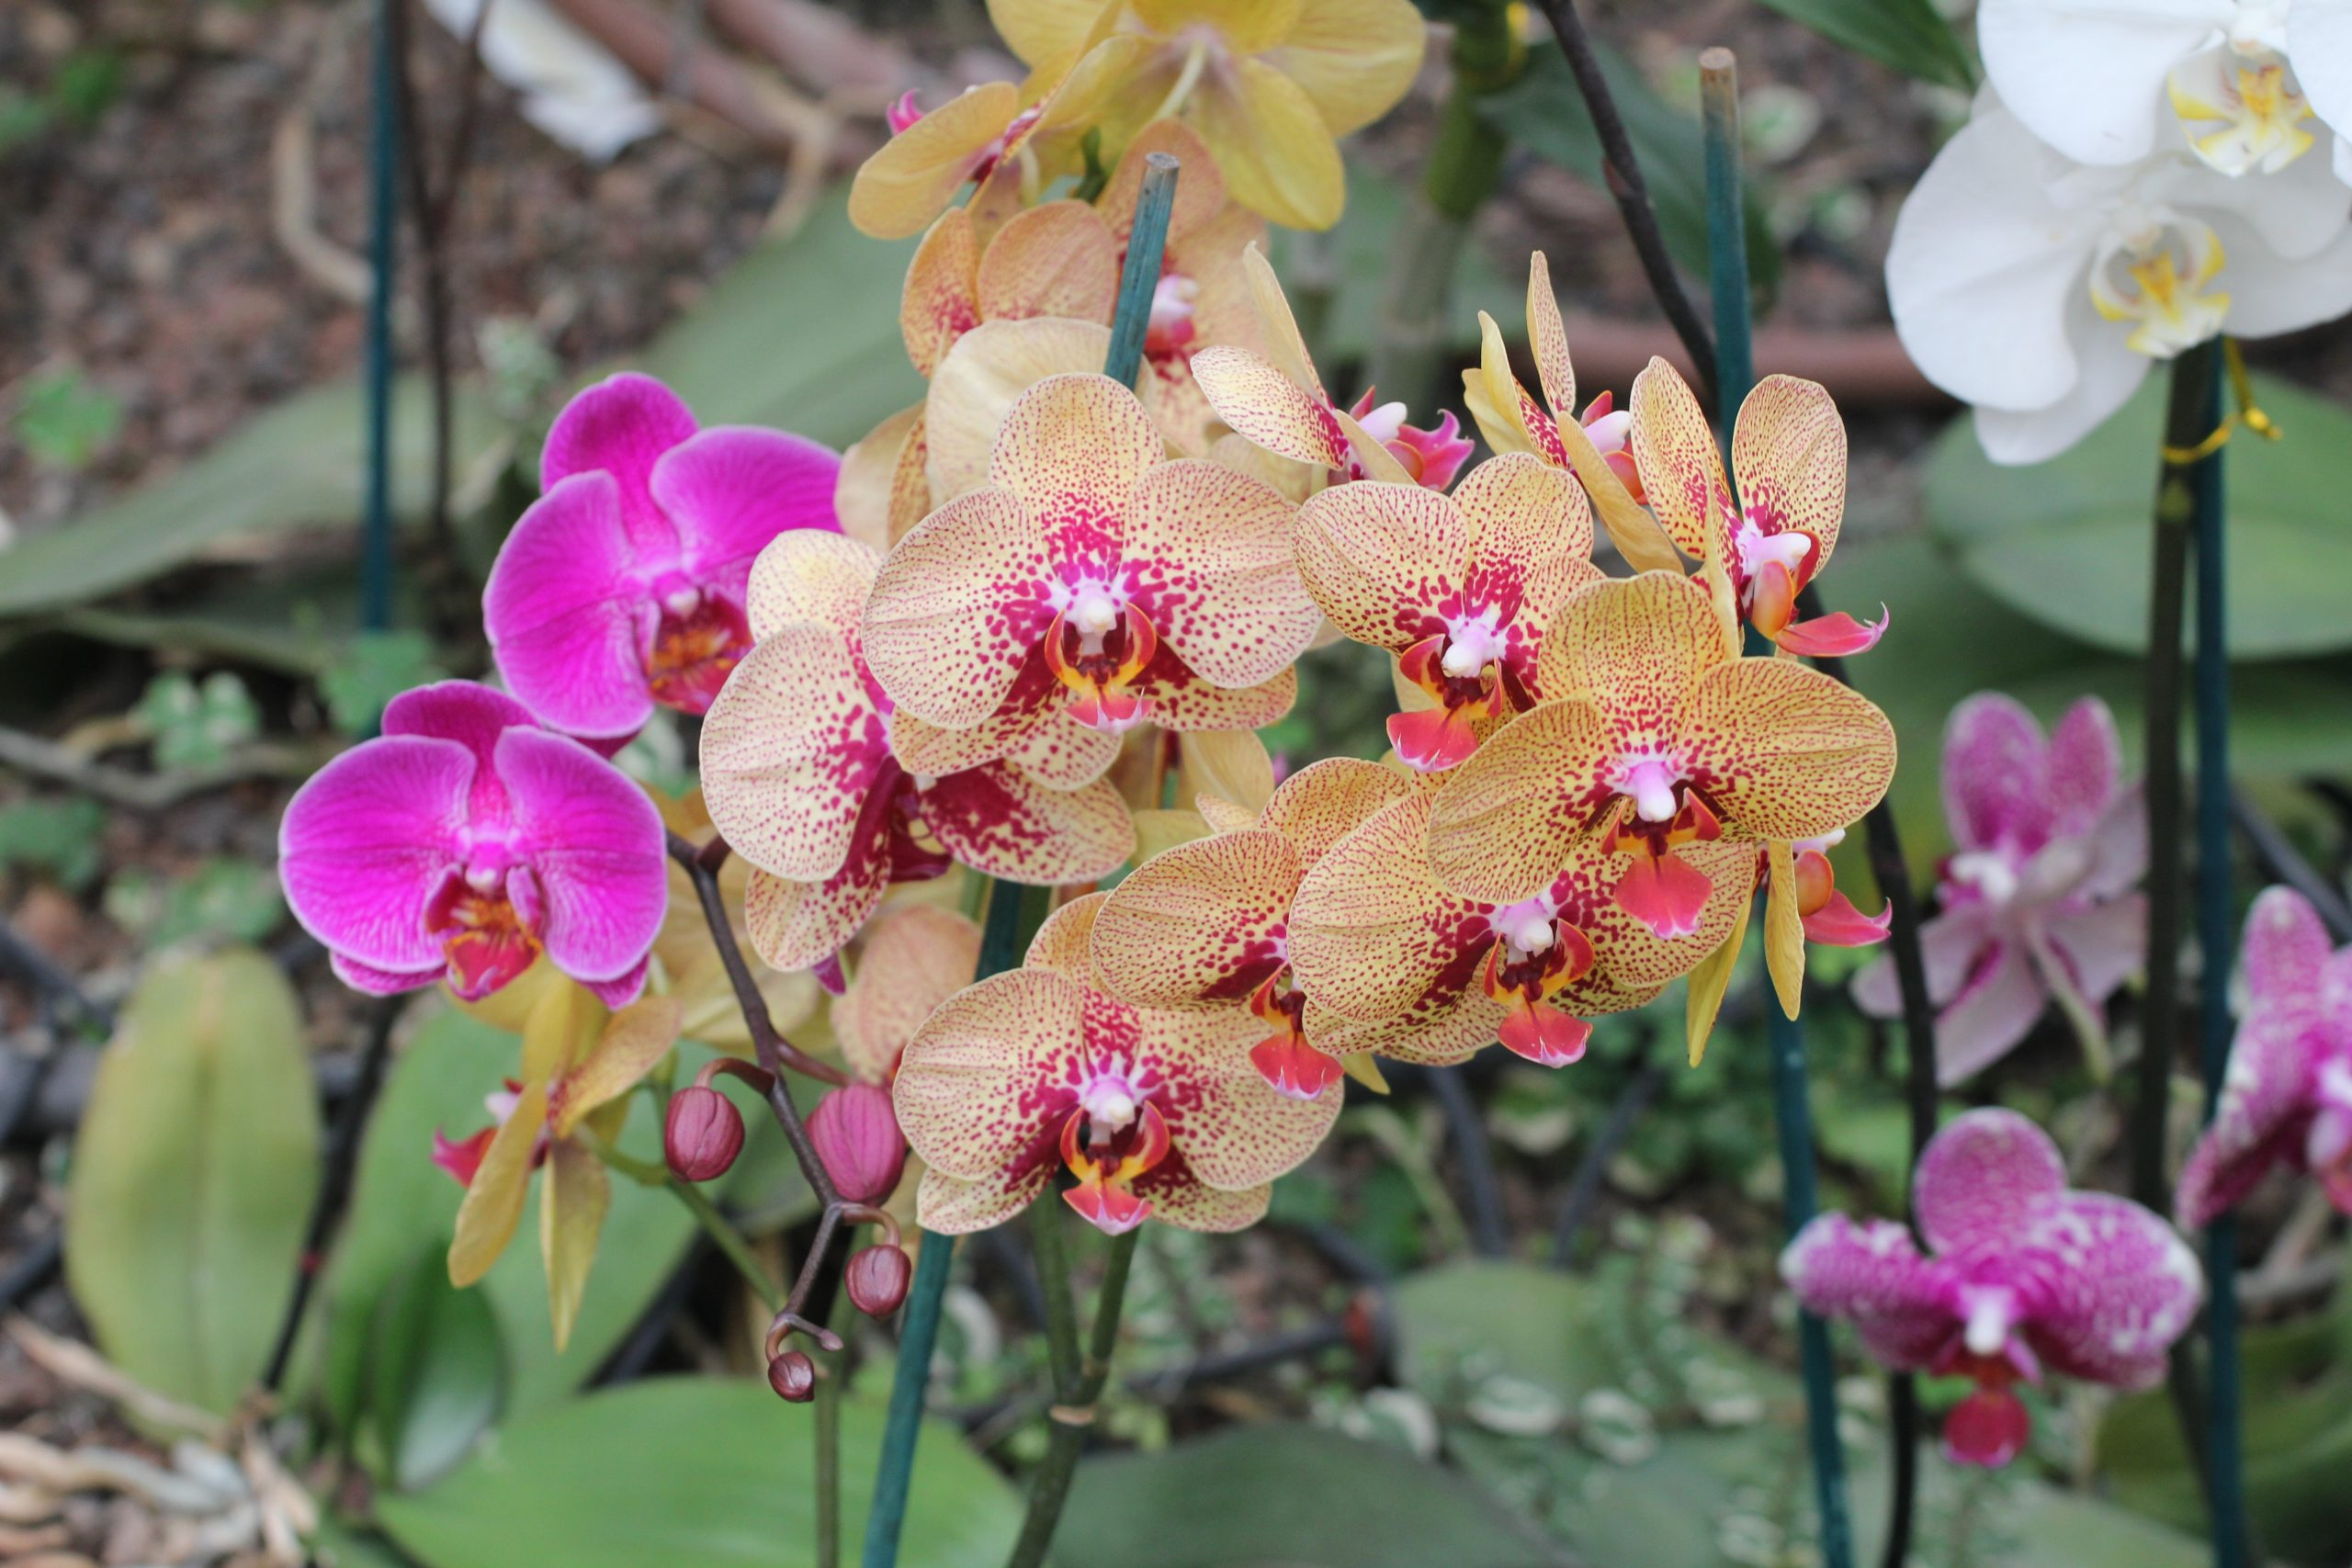 OrchidSociety.org (Orchid Society), domain name for sale